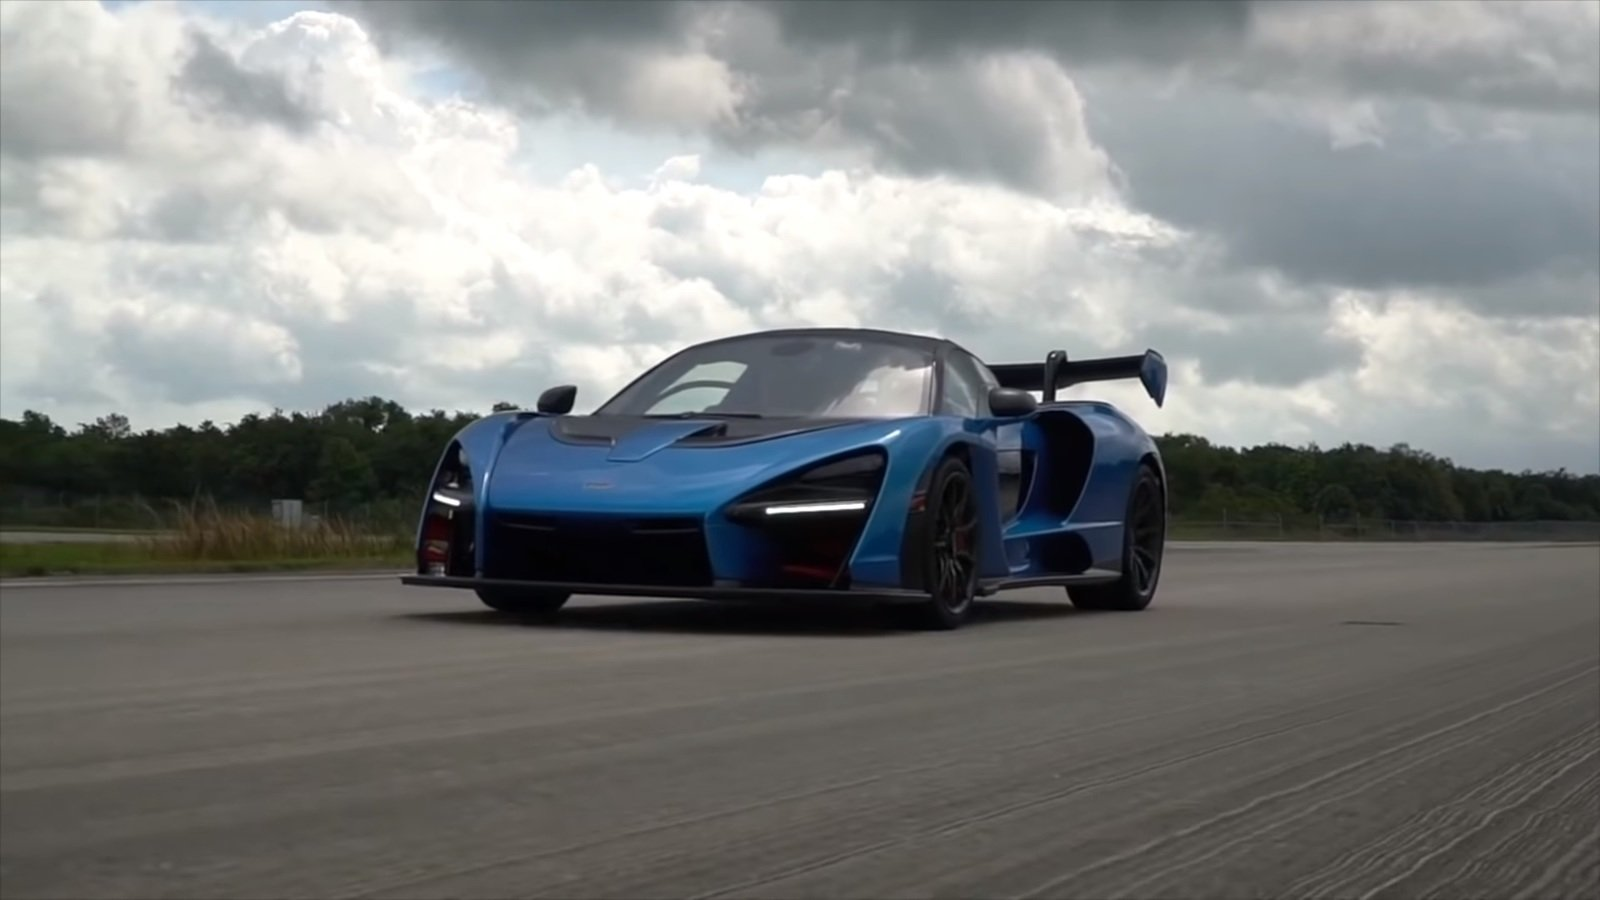 Mclaren For Sale >> Video: How Fast Can The McLaren Senna Really Go? | Top Speed